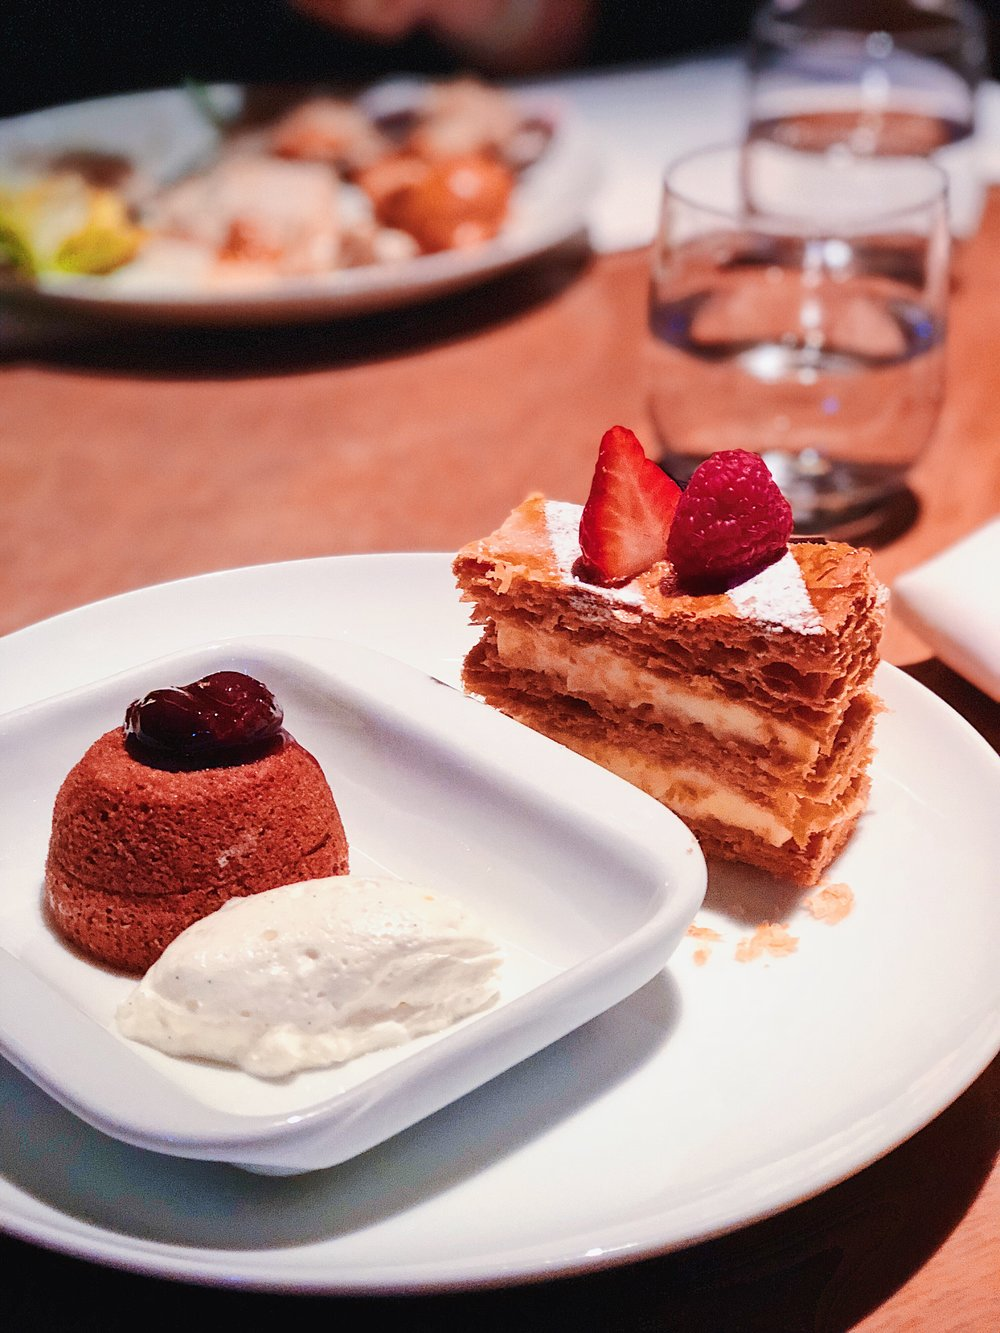 Dessert must-try: Chocolate lava cake and Napoleon cake. Napoleon pairs with thick custard!